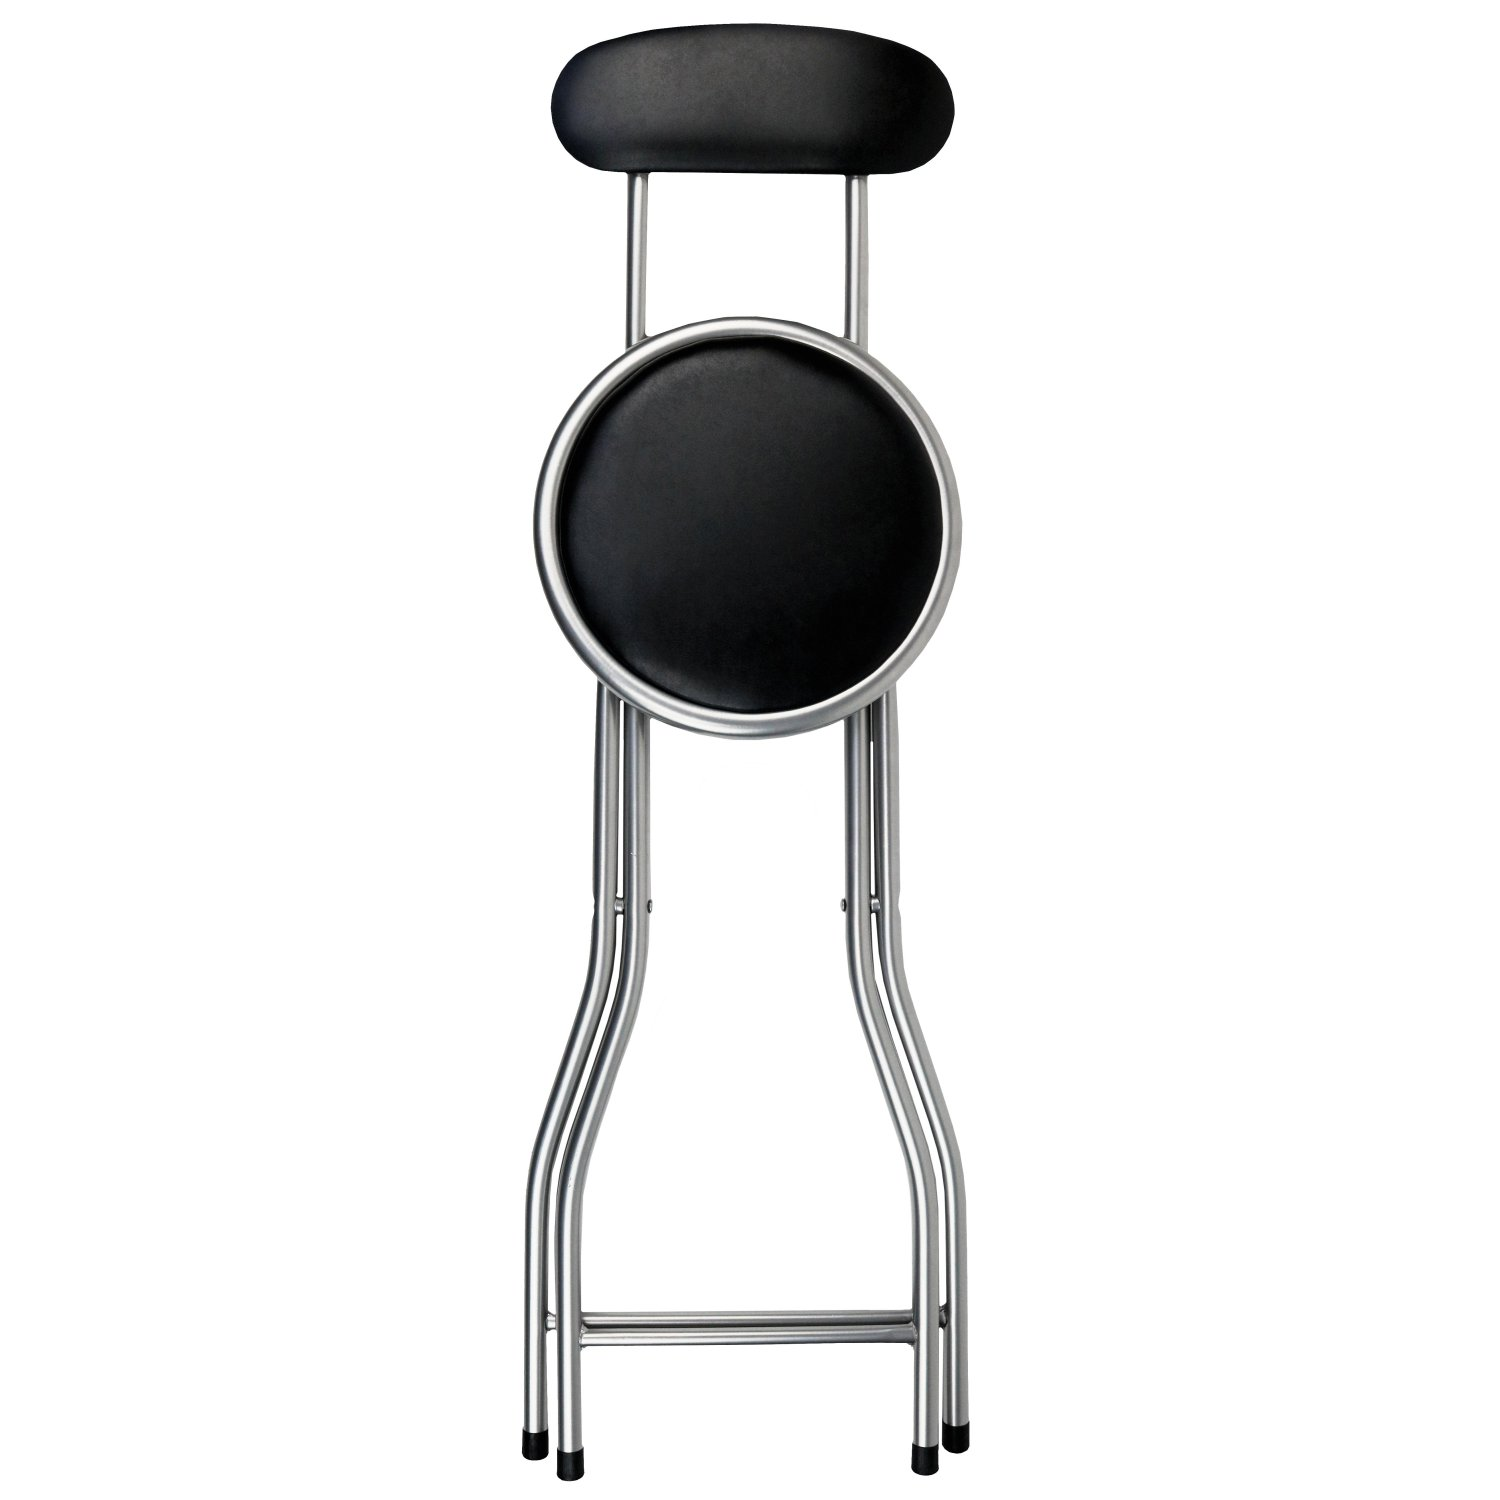 Padded Stool New Black Padded Folding High Chair Breakfast Kitchen Bar